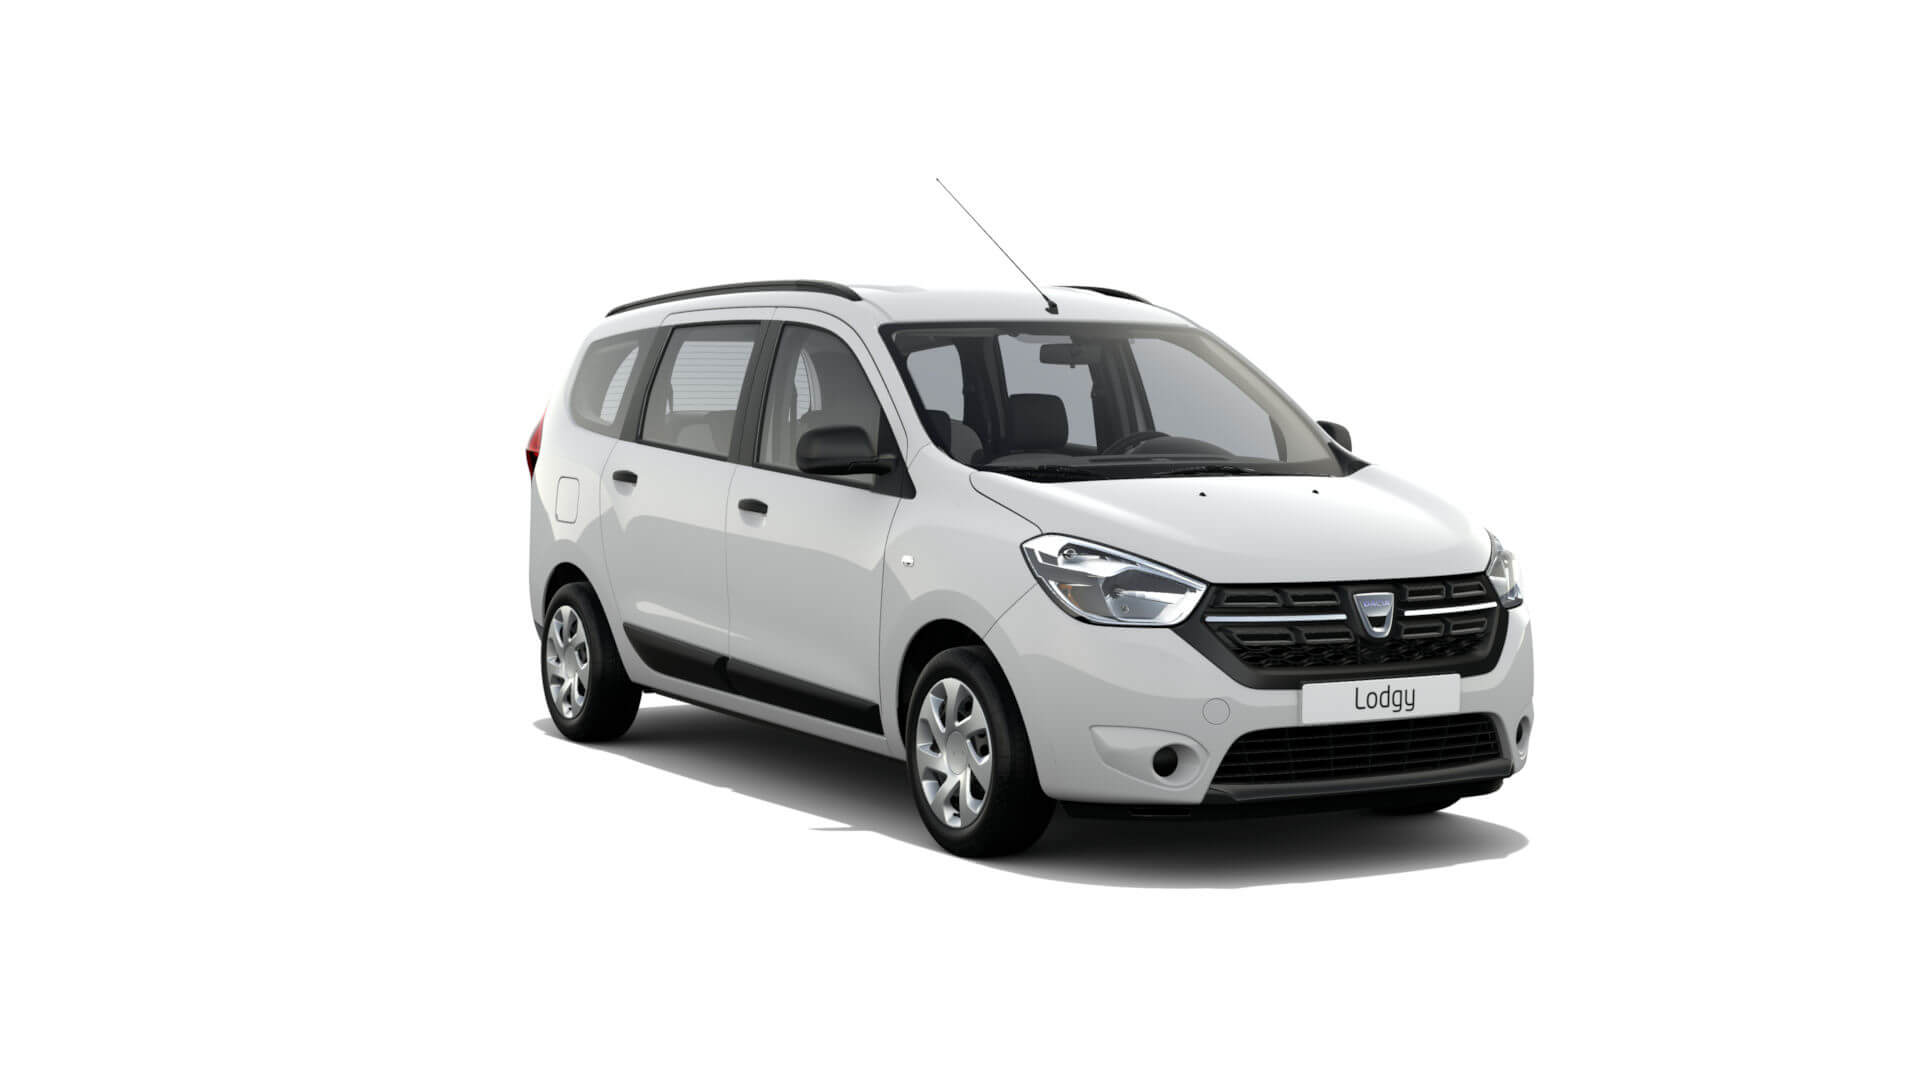 Automodell weiß - Dacia Lodgy NFZ - Renault Ahrens Hannover